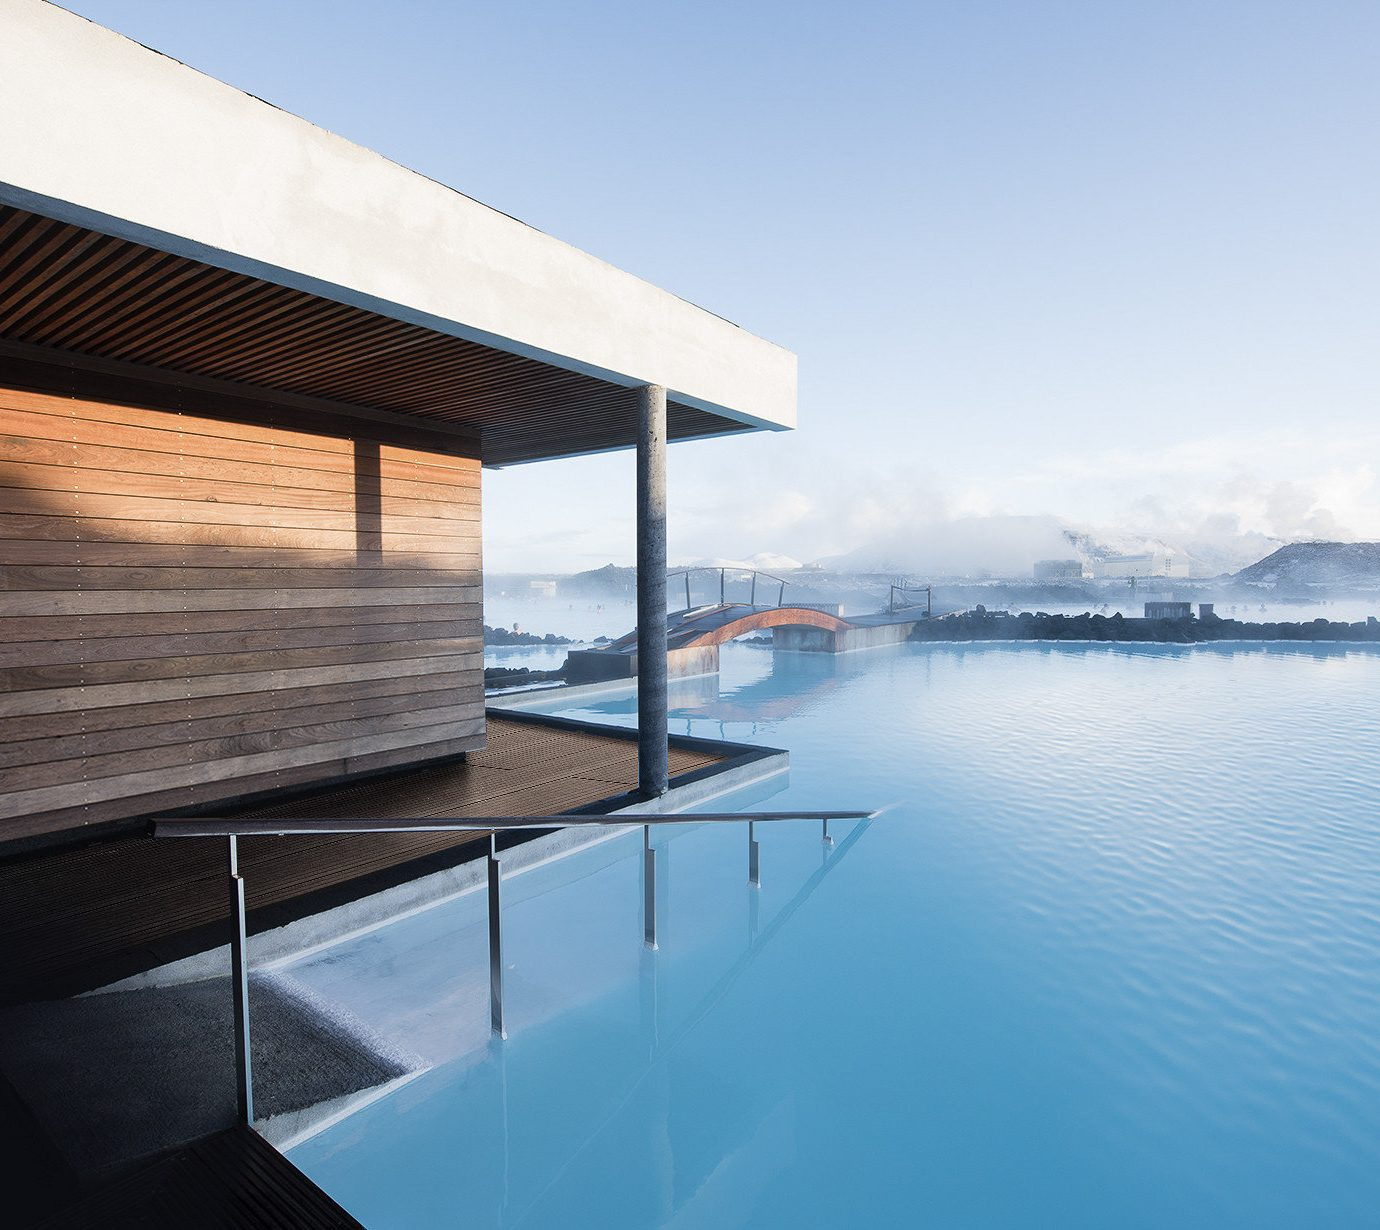 europe Hotels Iceland Trip Ideas reflection water Architecture sky house swimming pool real estate daylighting Sea building condominium facade window